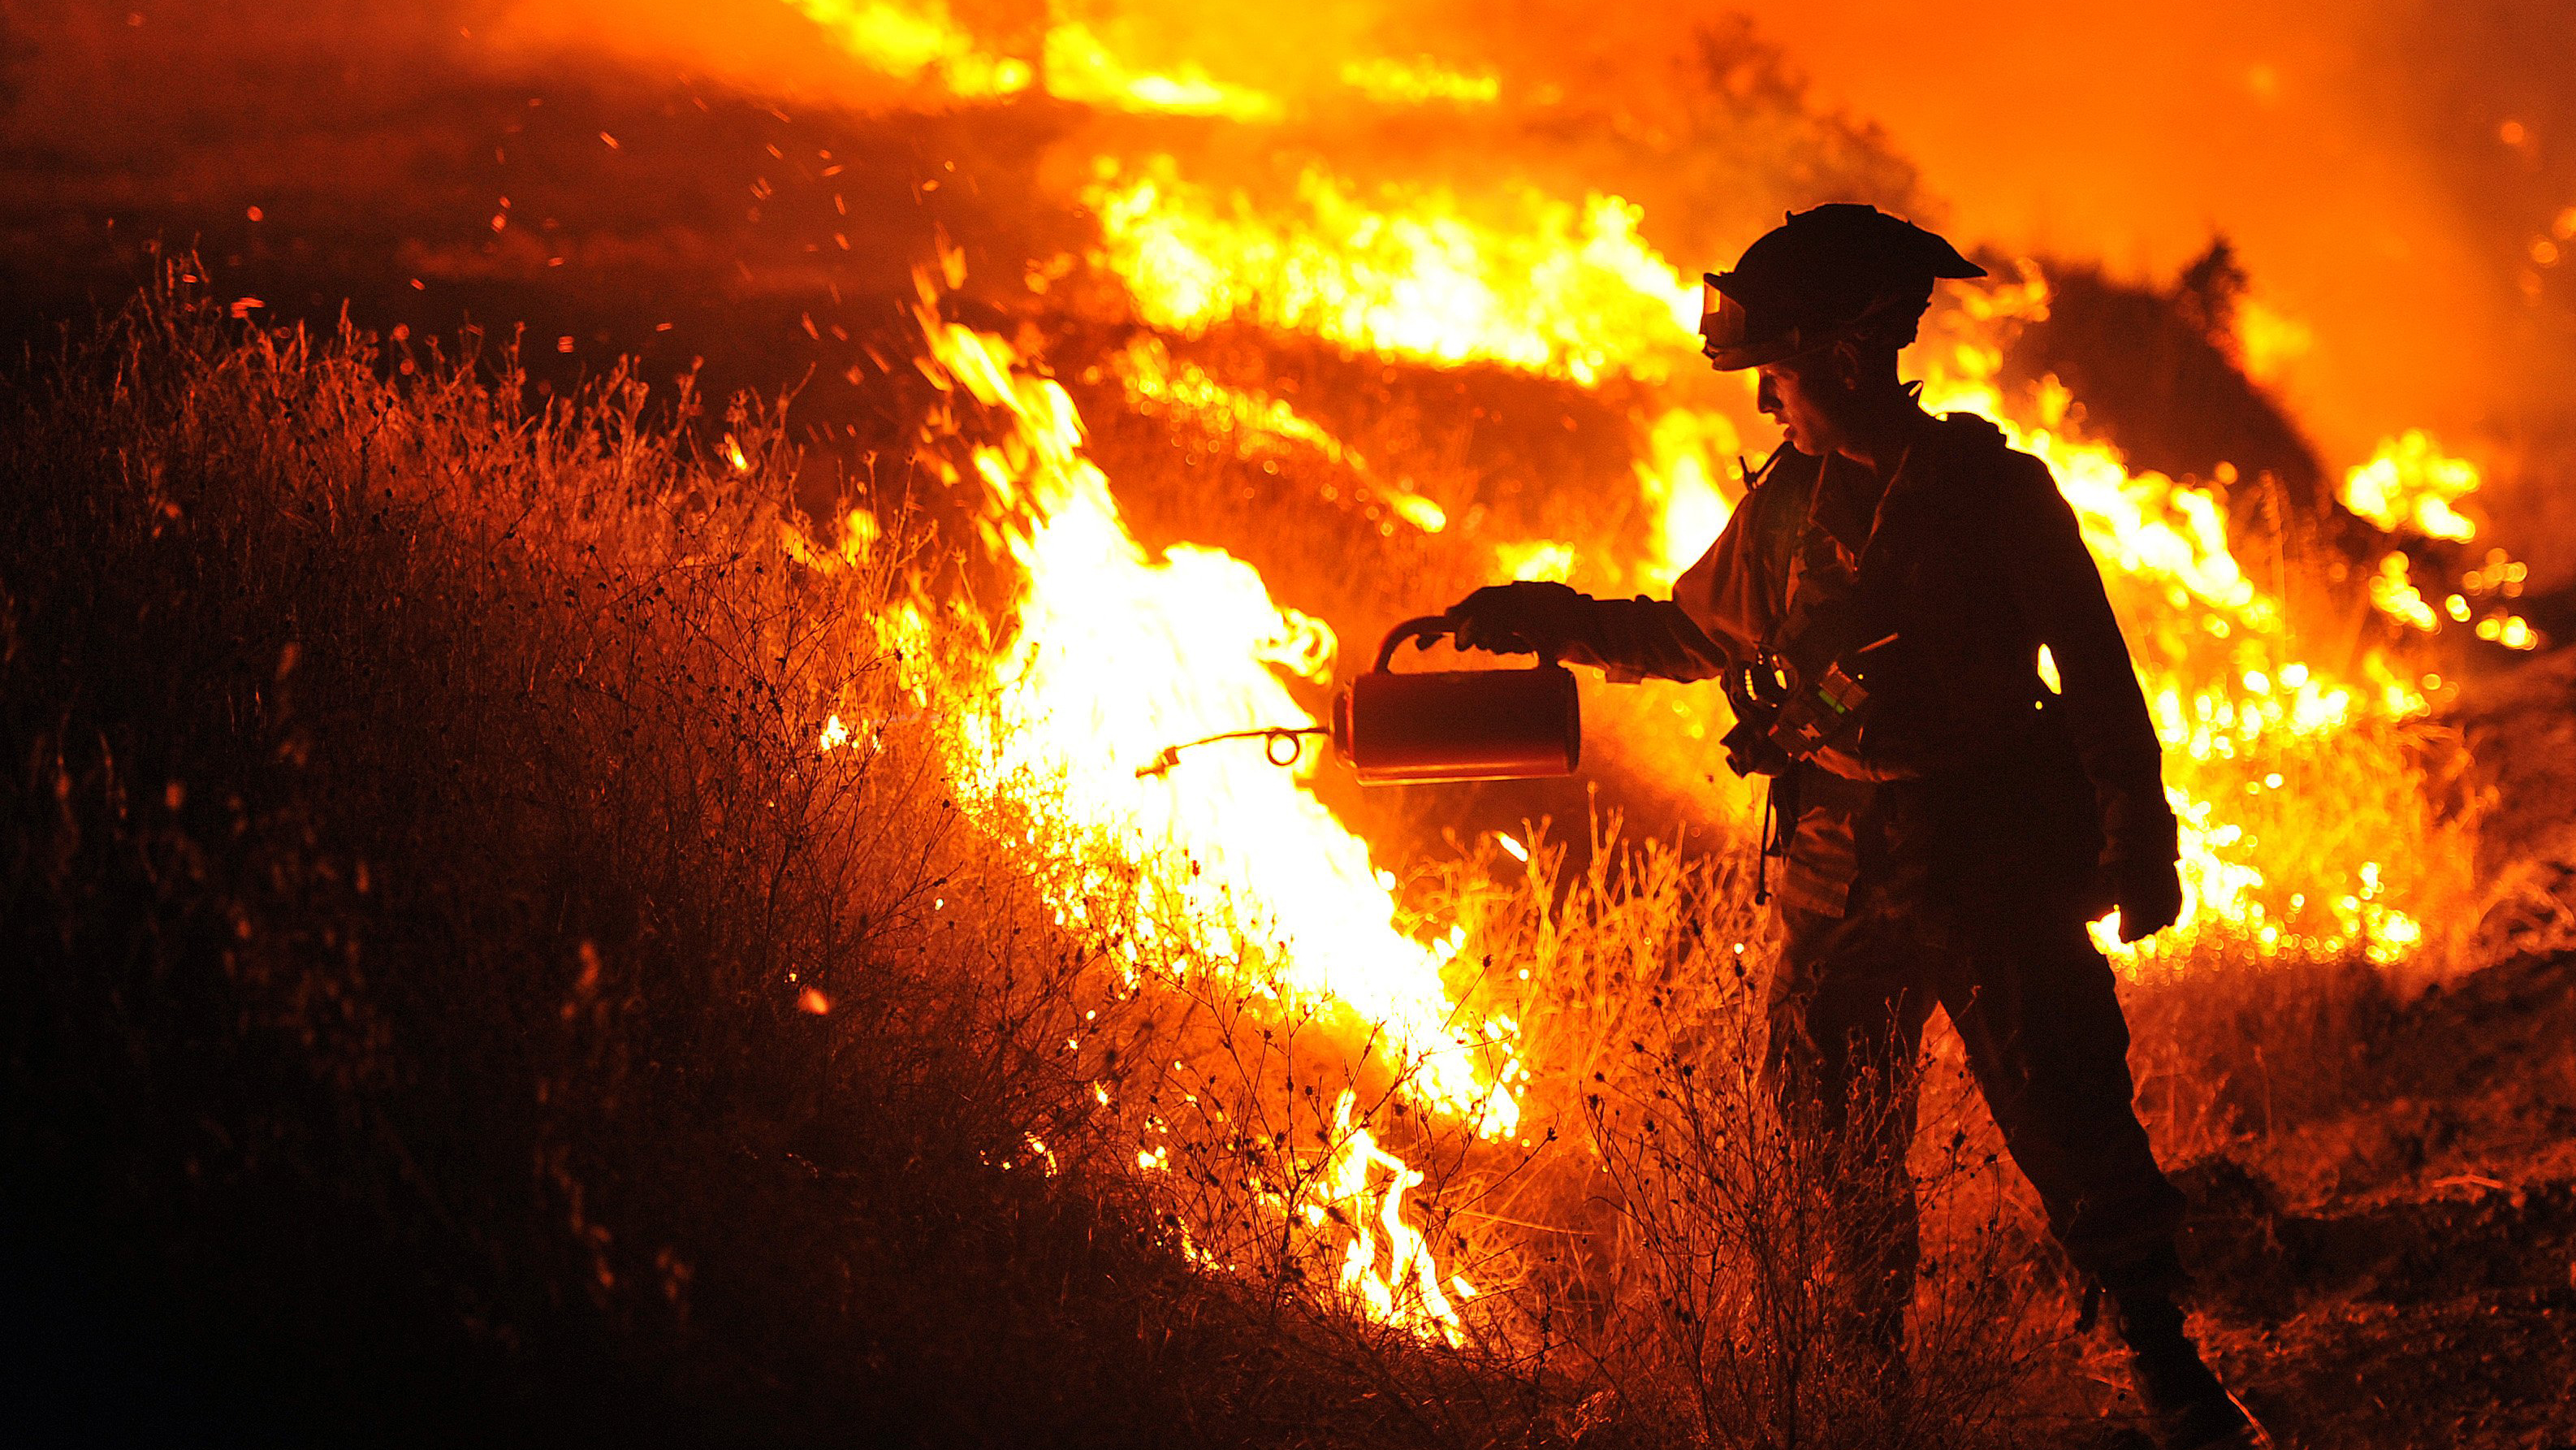 California Wildfires: Air Force Reserves Drafted In to Battle Blazes